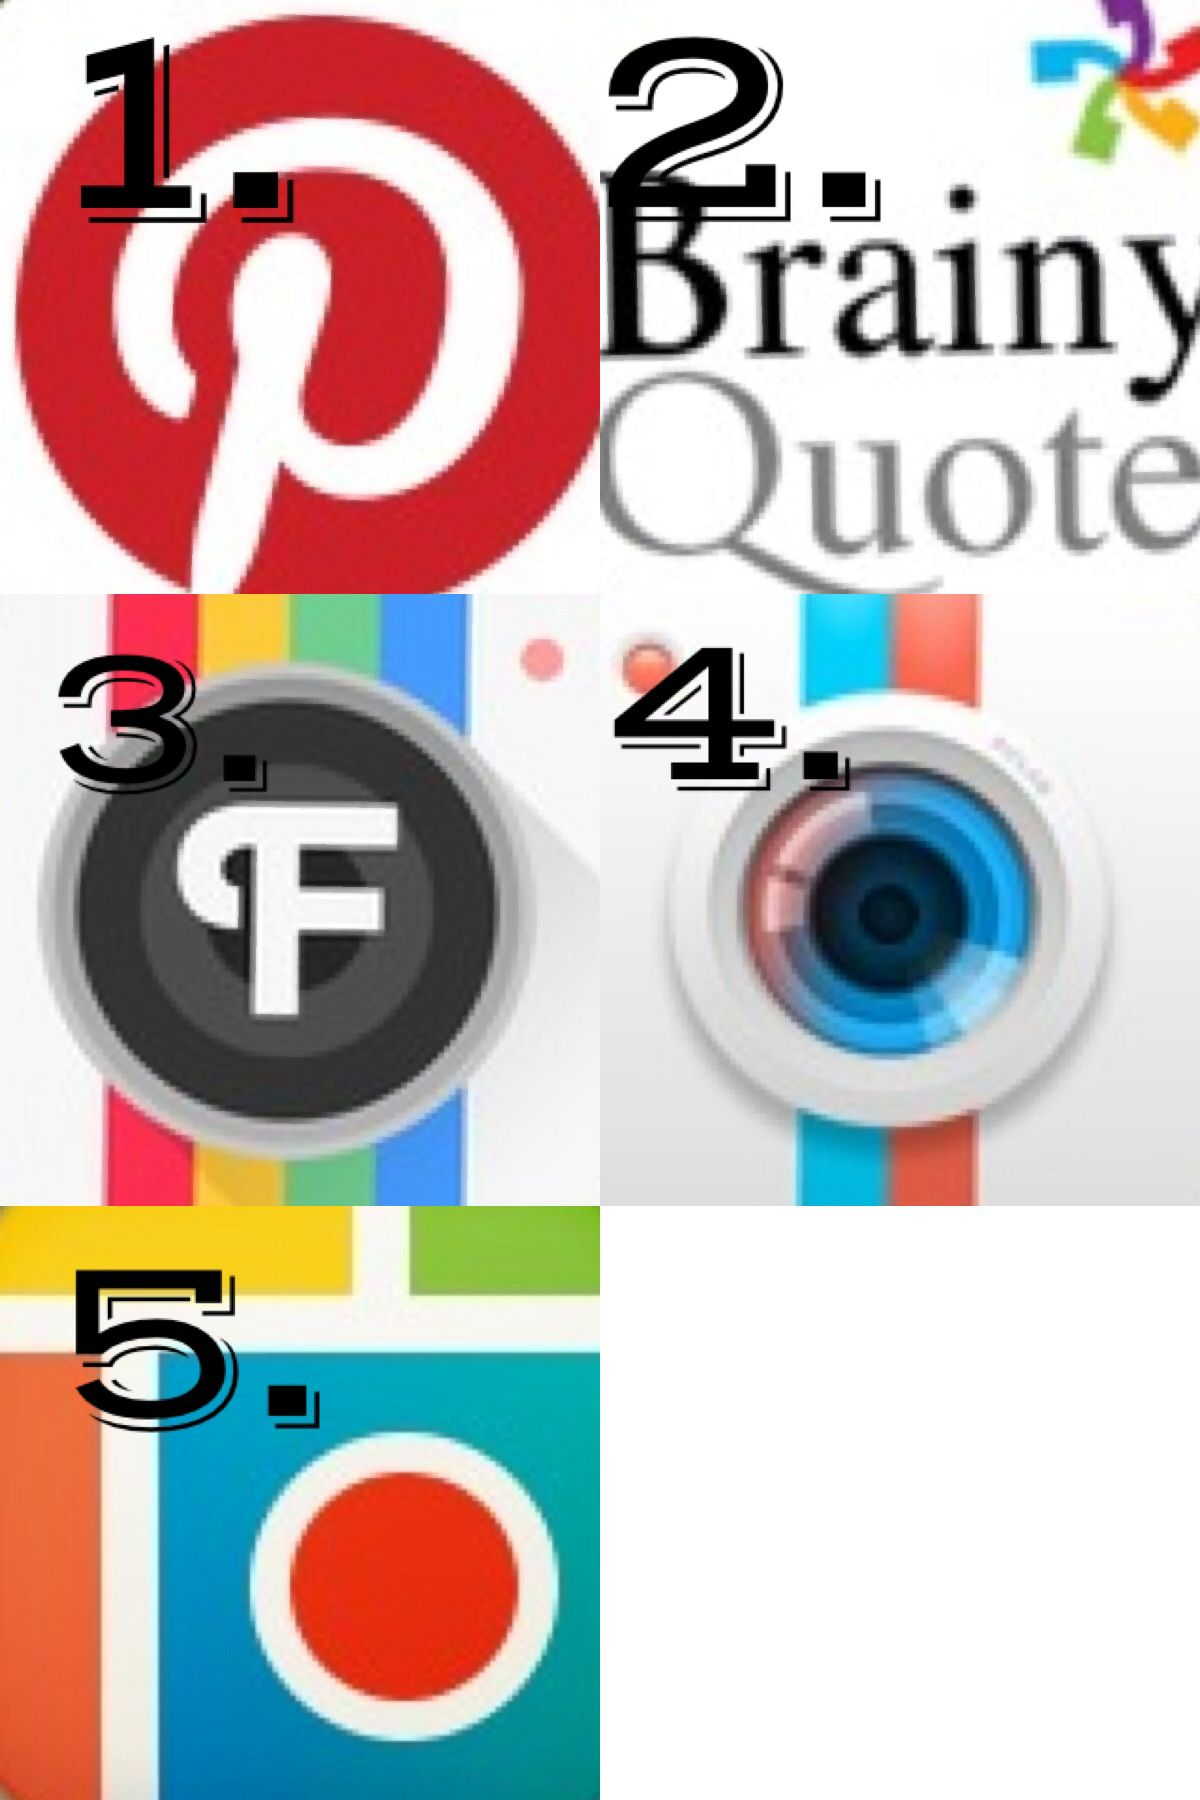 These are the apps I use to make my edits! And they are